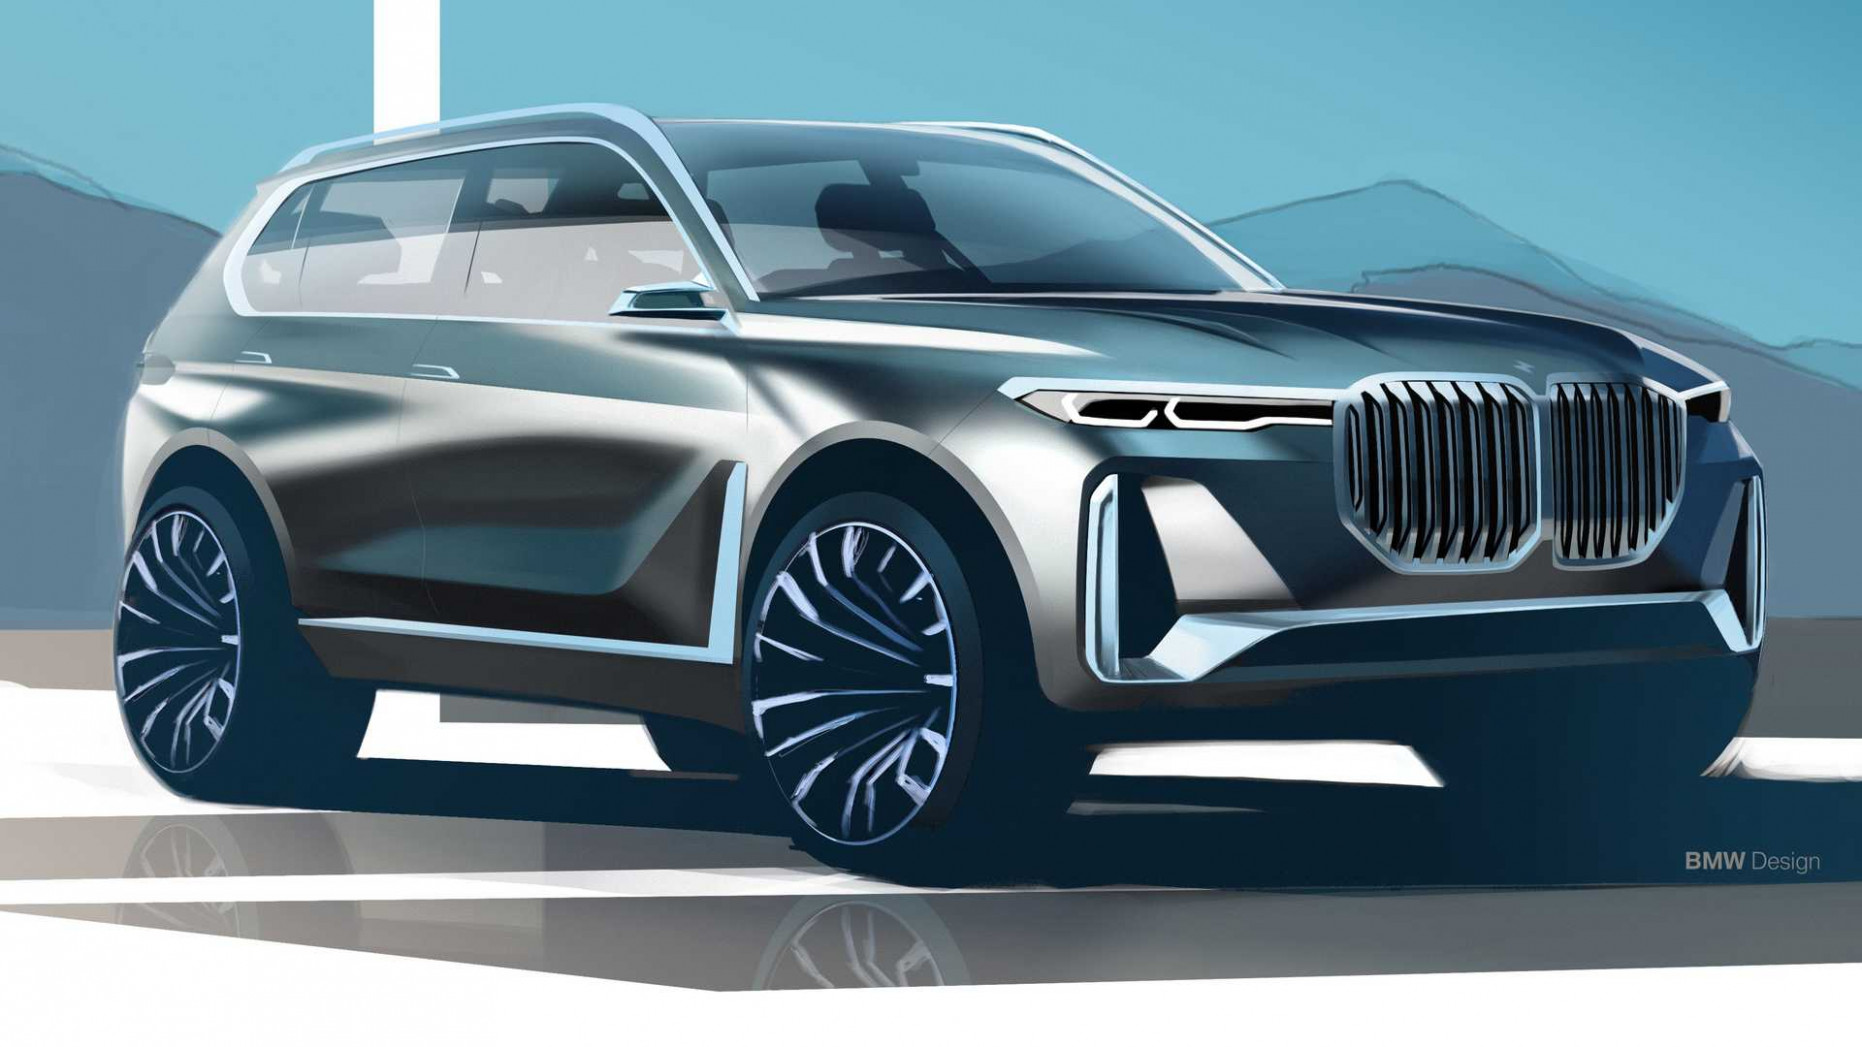 Review BMW Suv 2022